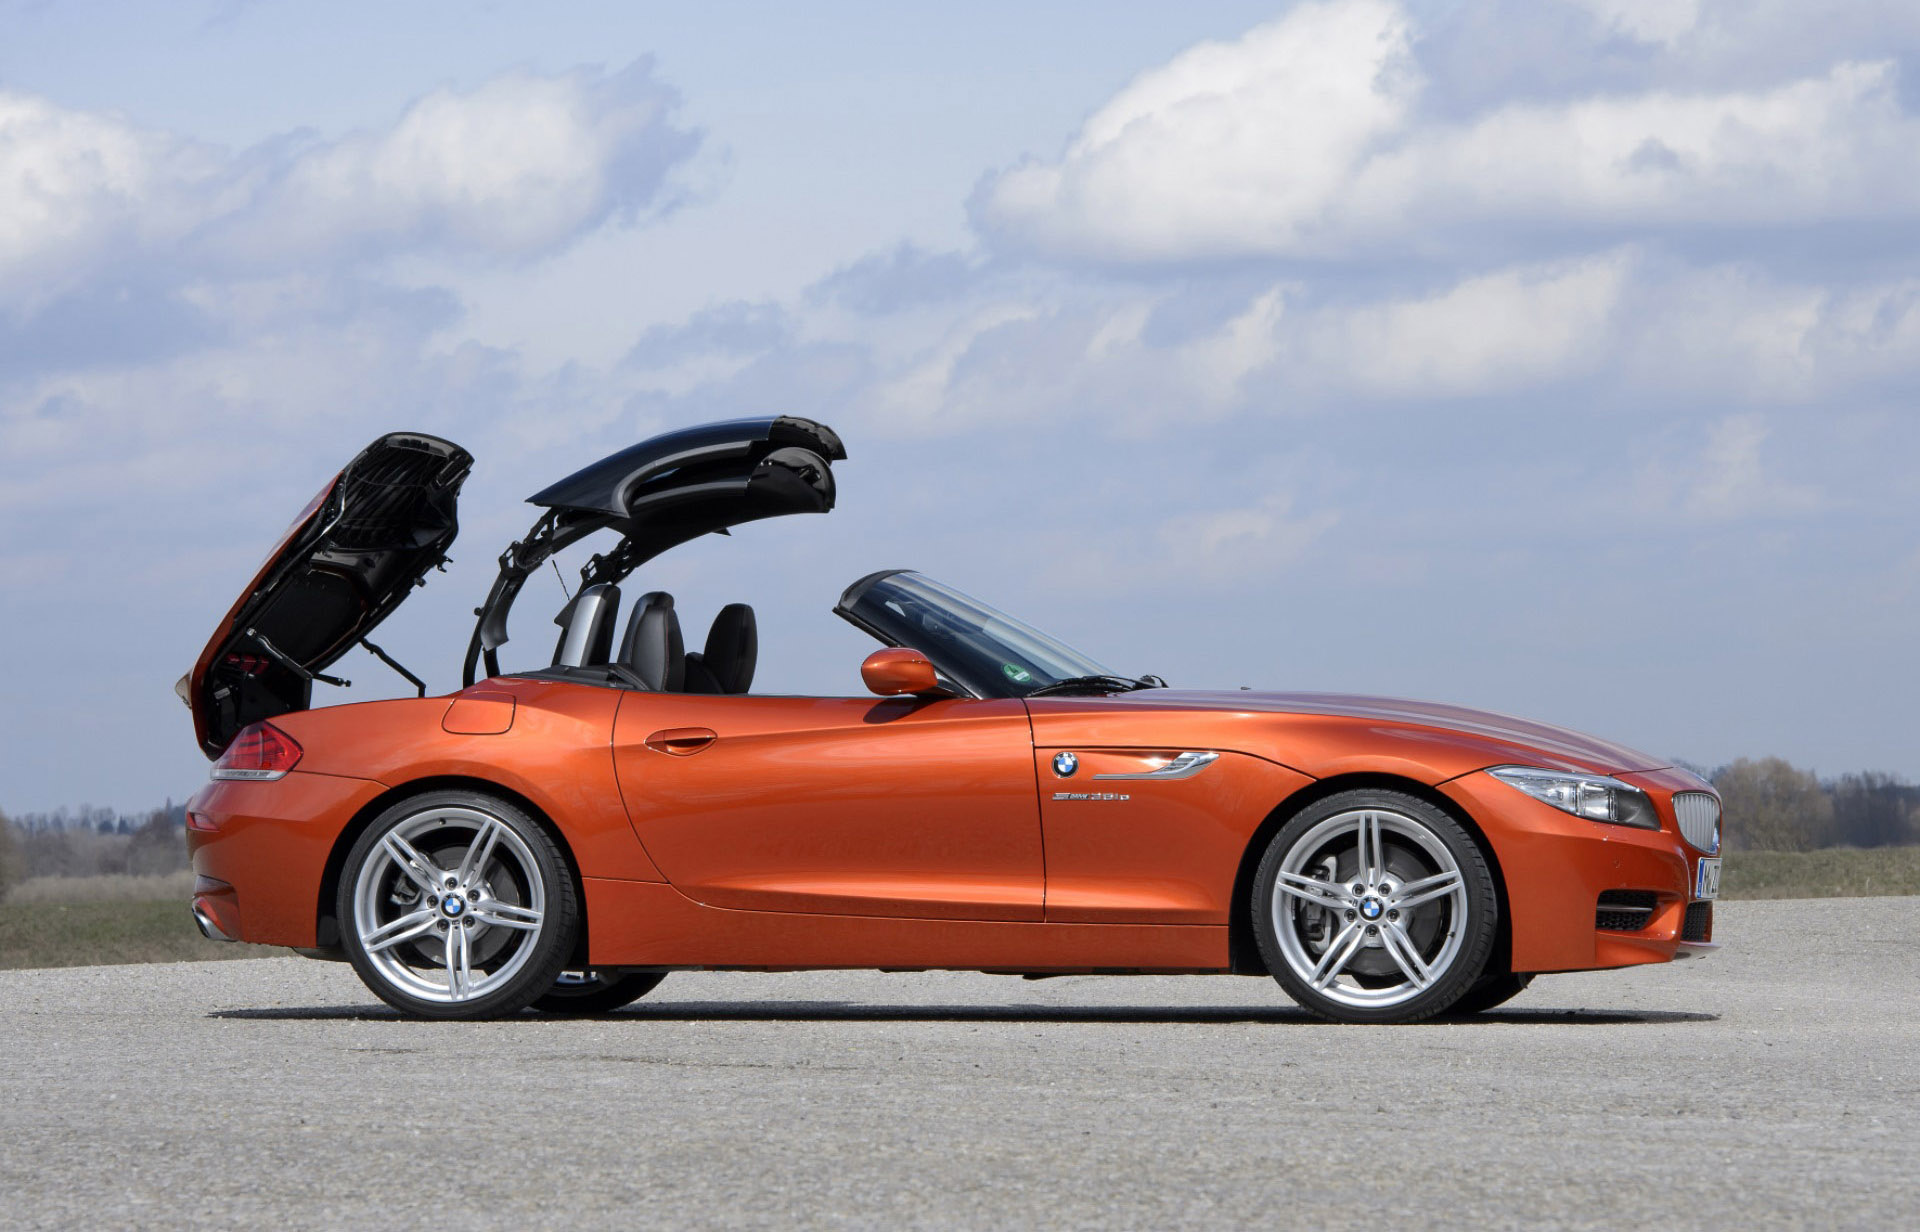 2016 Bmw Z4 E89 Sdrive35 In Valencia Orange Metallic Picture 133512